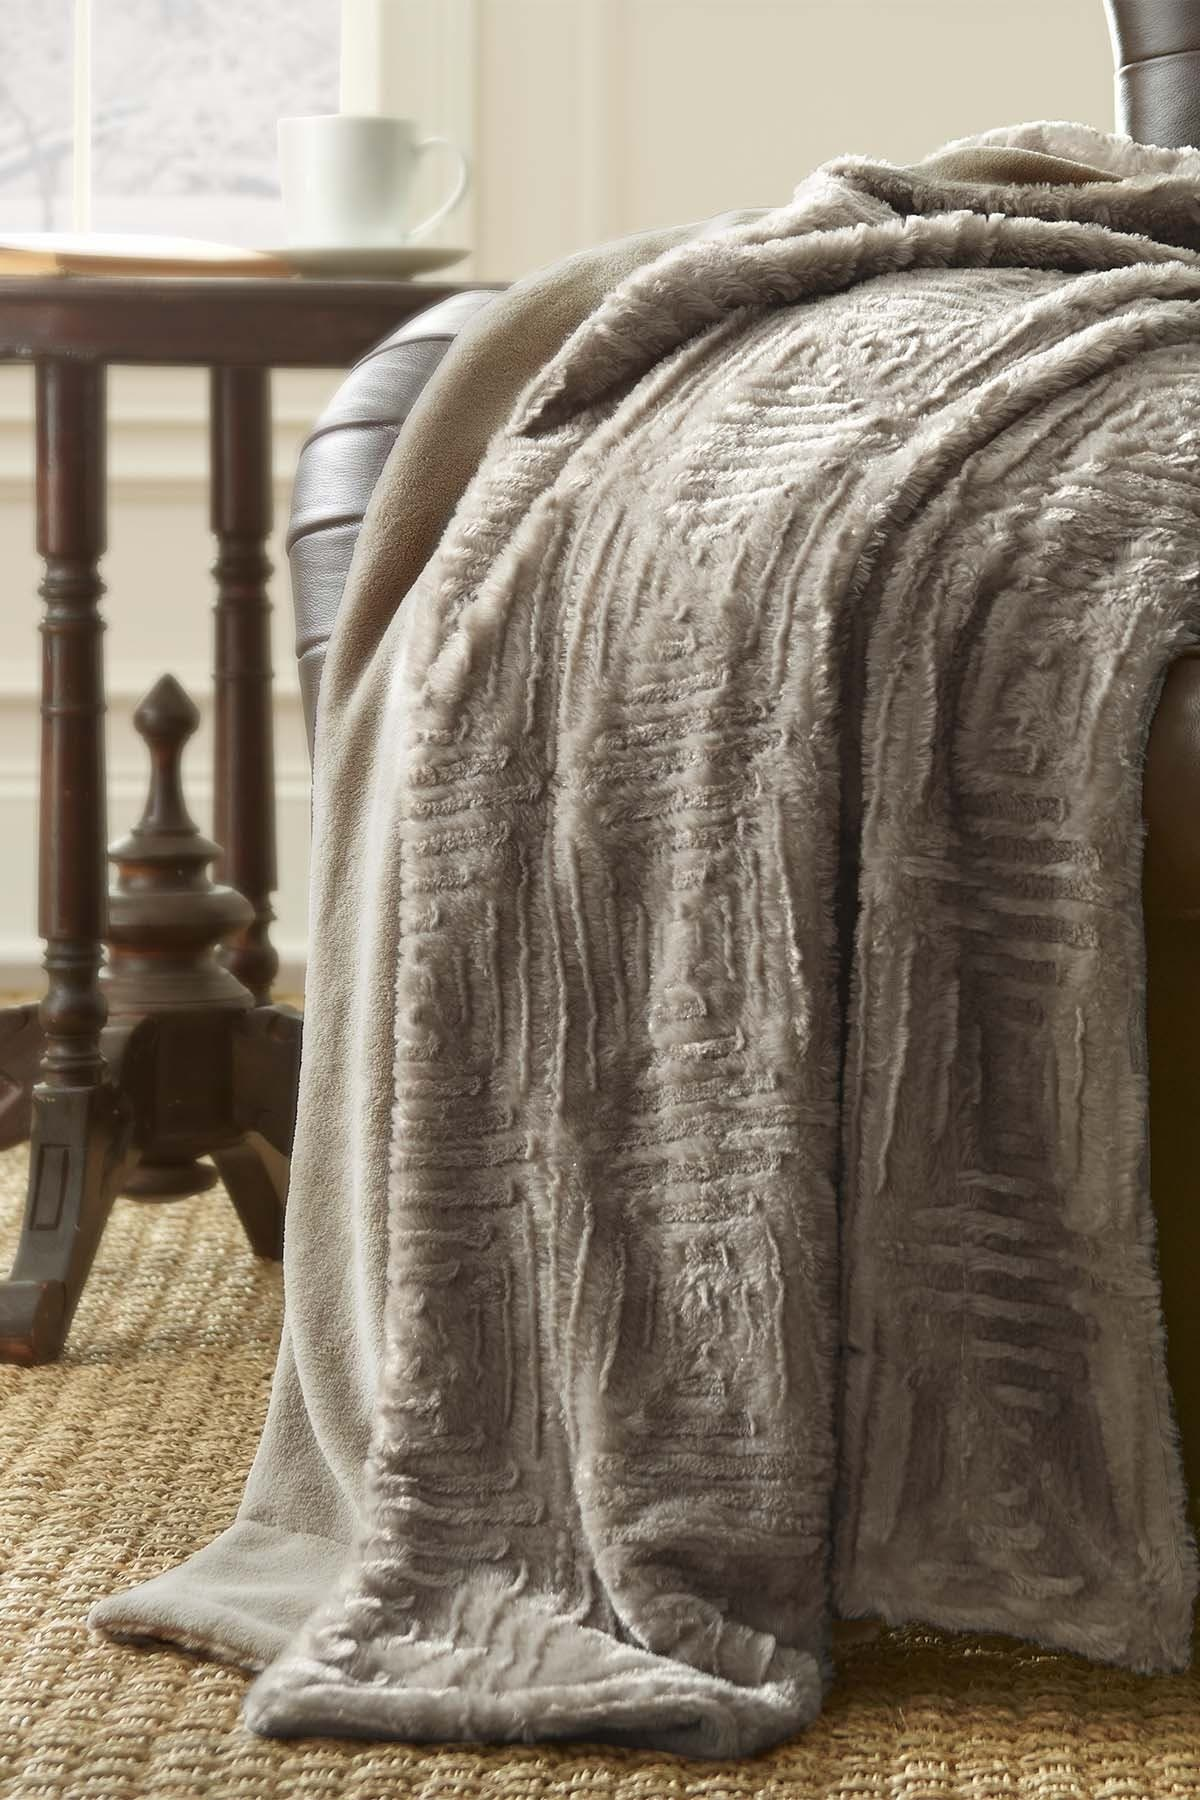 Modern Threads Luxury Faux Fur Throw - Pumice Stone at Nordstrom Rack